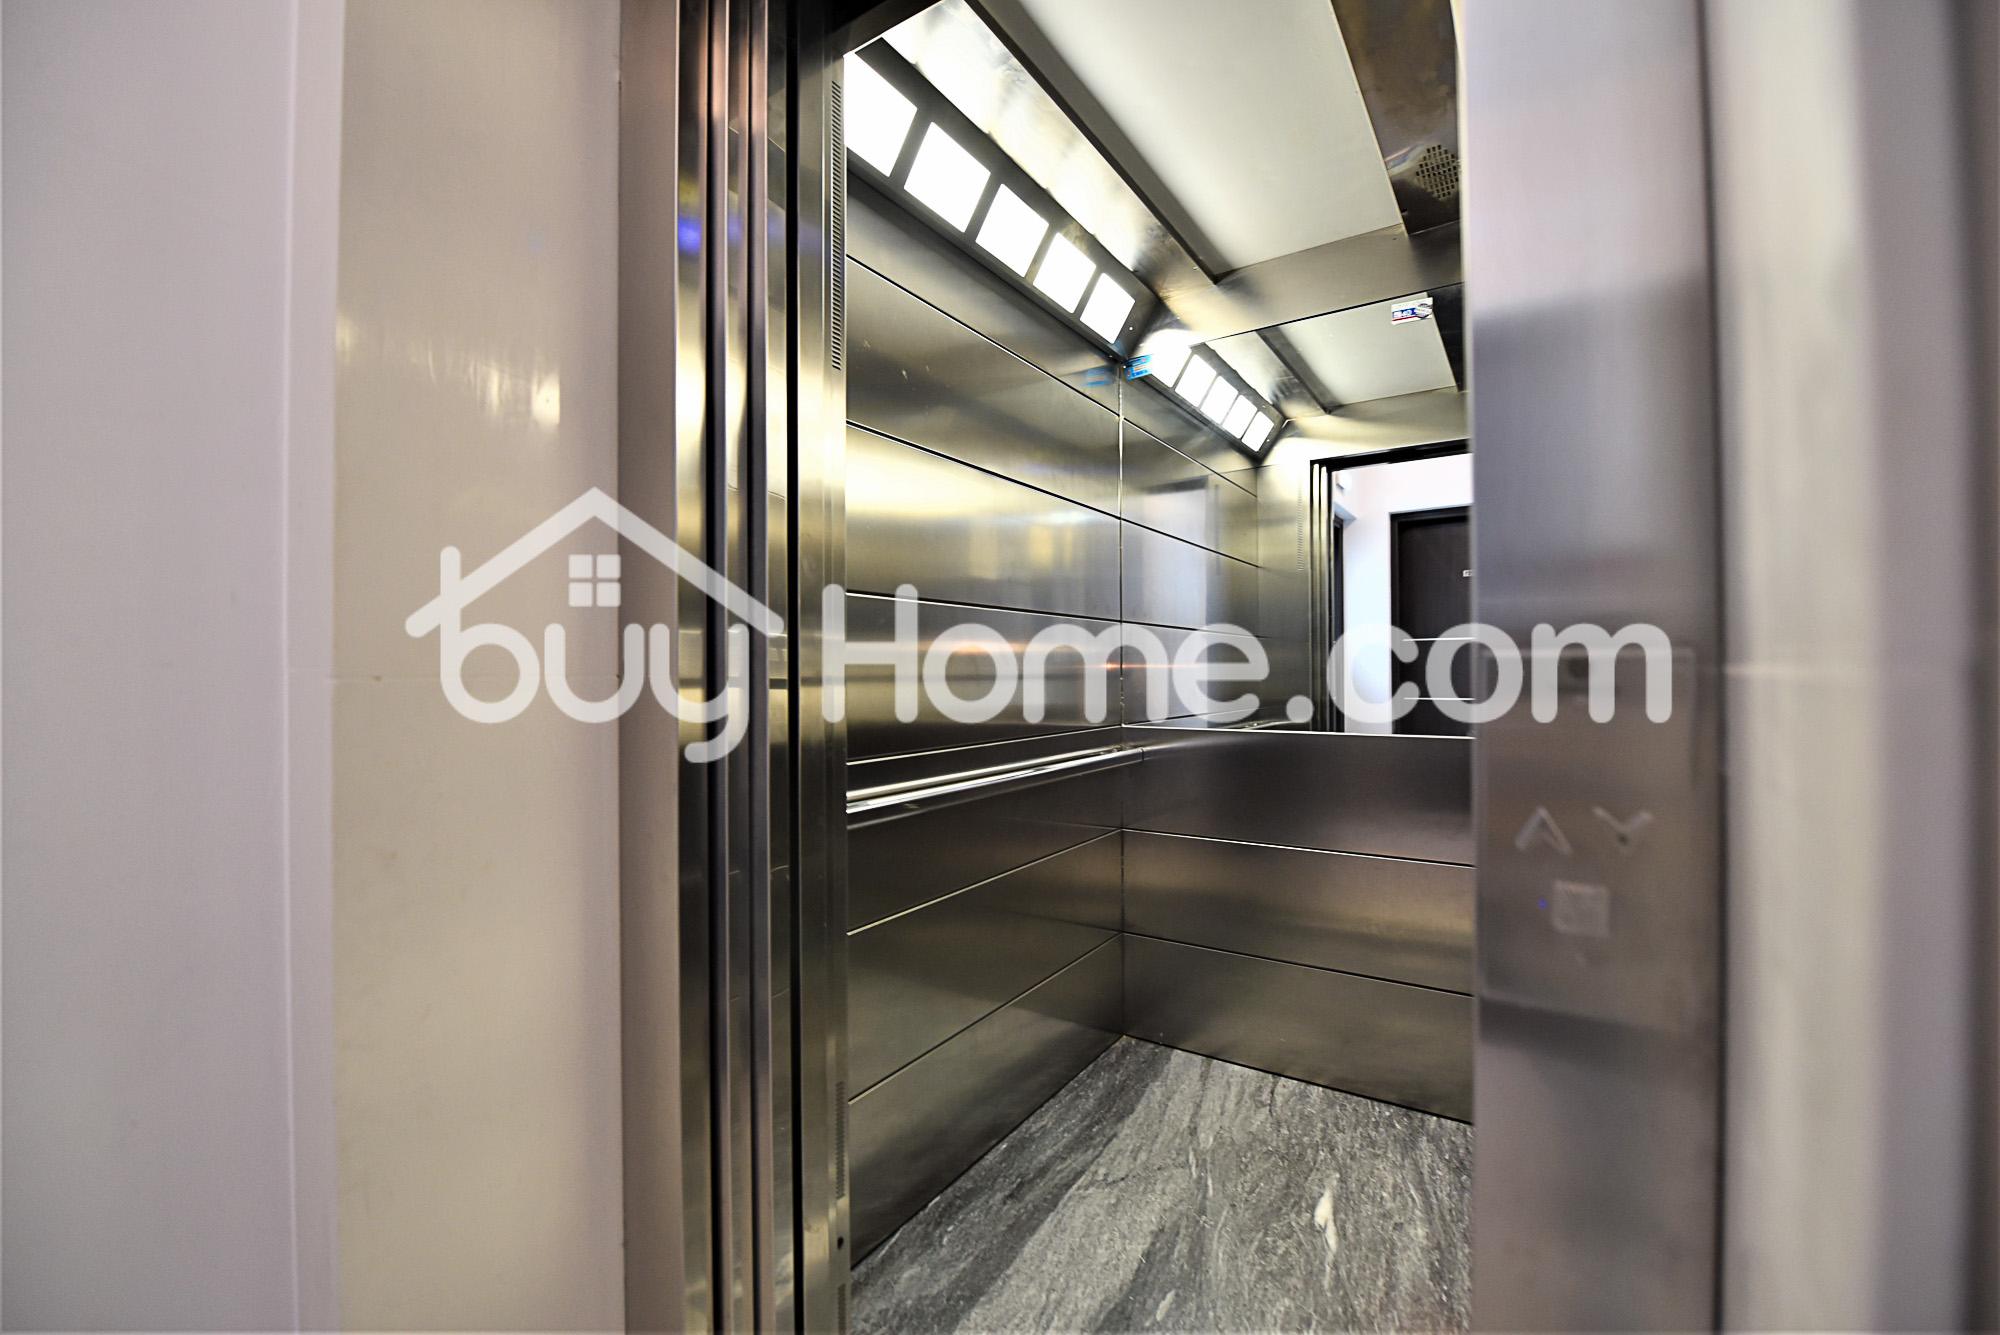 2 Bedroom Modern Luxury Apartment | BuyHome